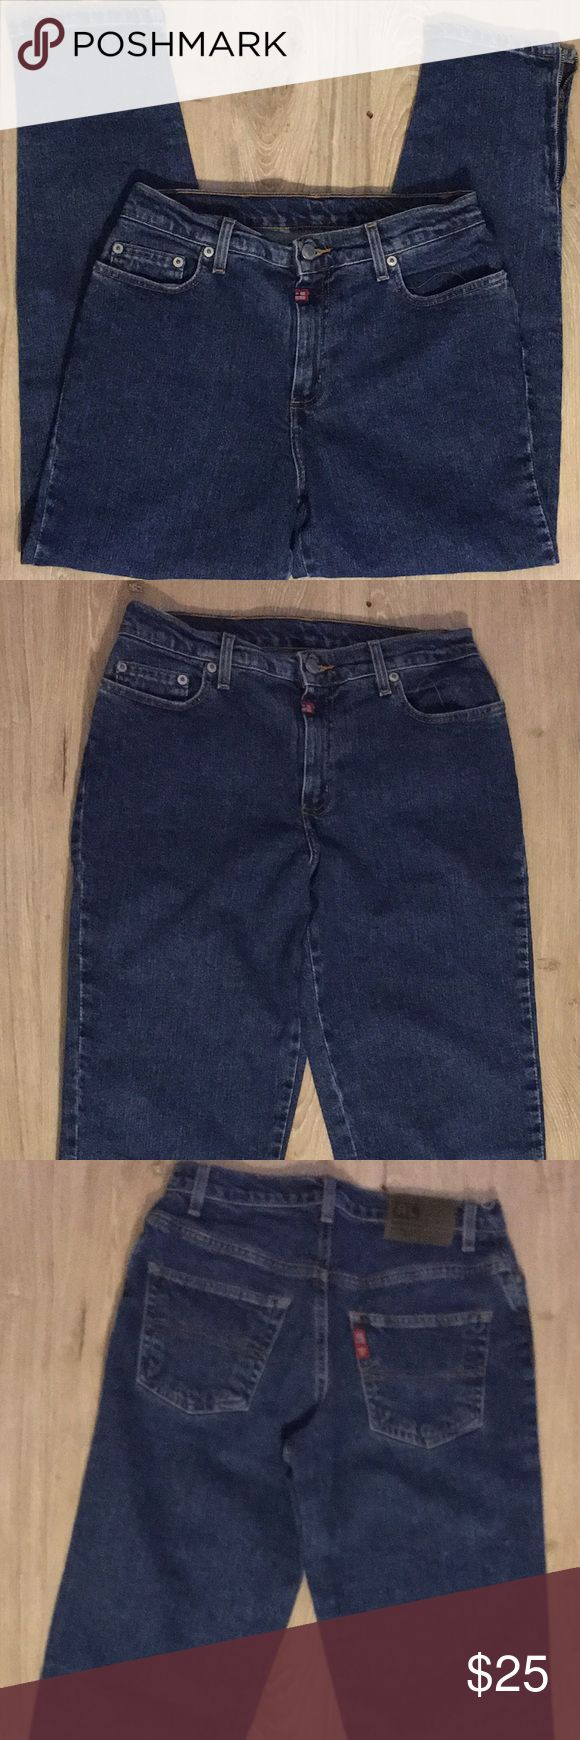 """NWOT Ralph Lauren Zip Ankle Capri Jeans Ankle Zip Capri Jean, perfect condition, no stains, no rips.  Inseam 26"""".  I kindly take offers. Ralph Lauren Jeans Ankle & Cropped"""